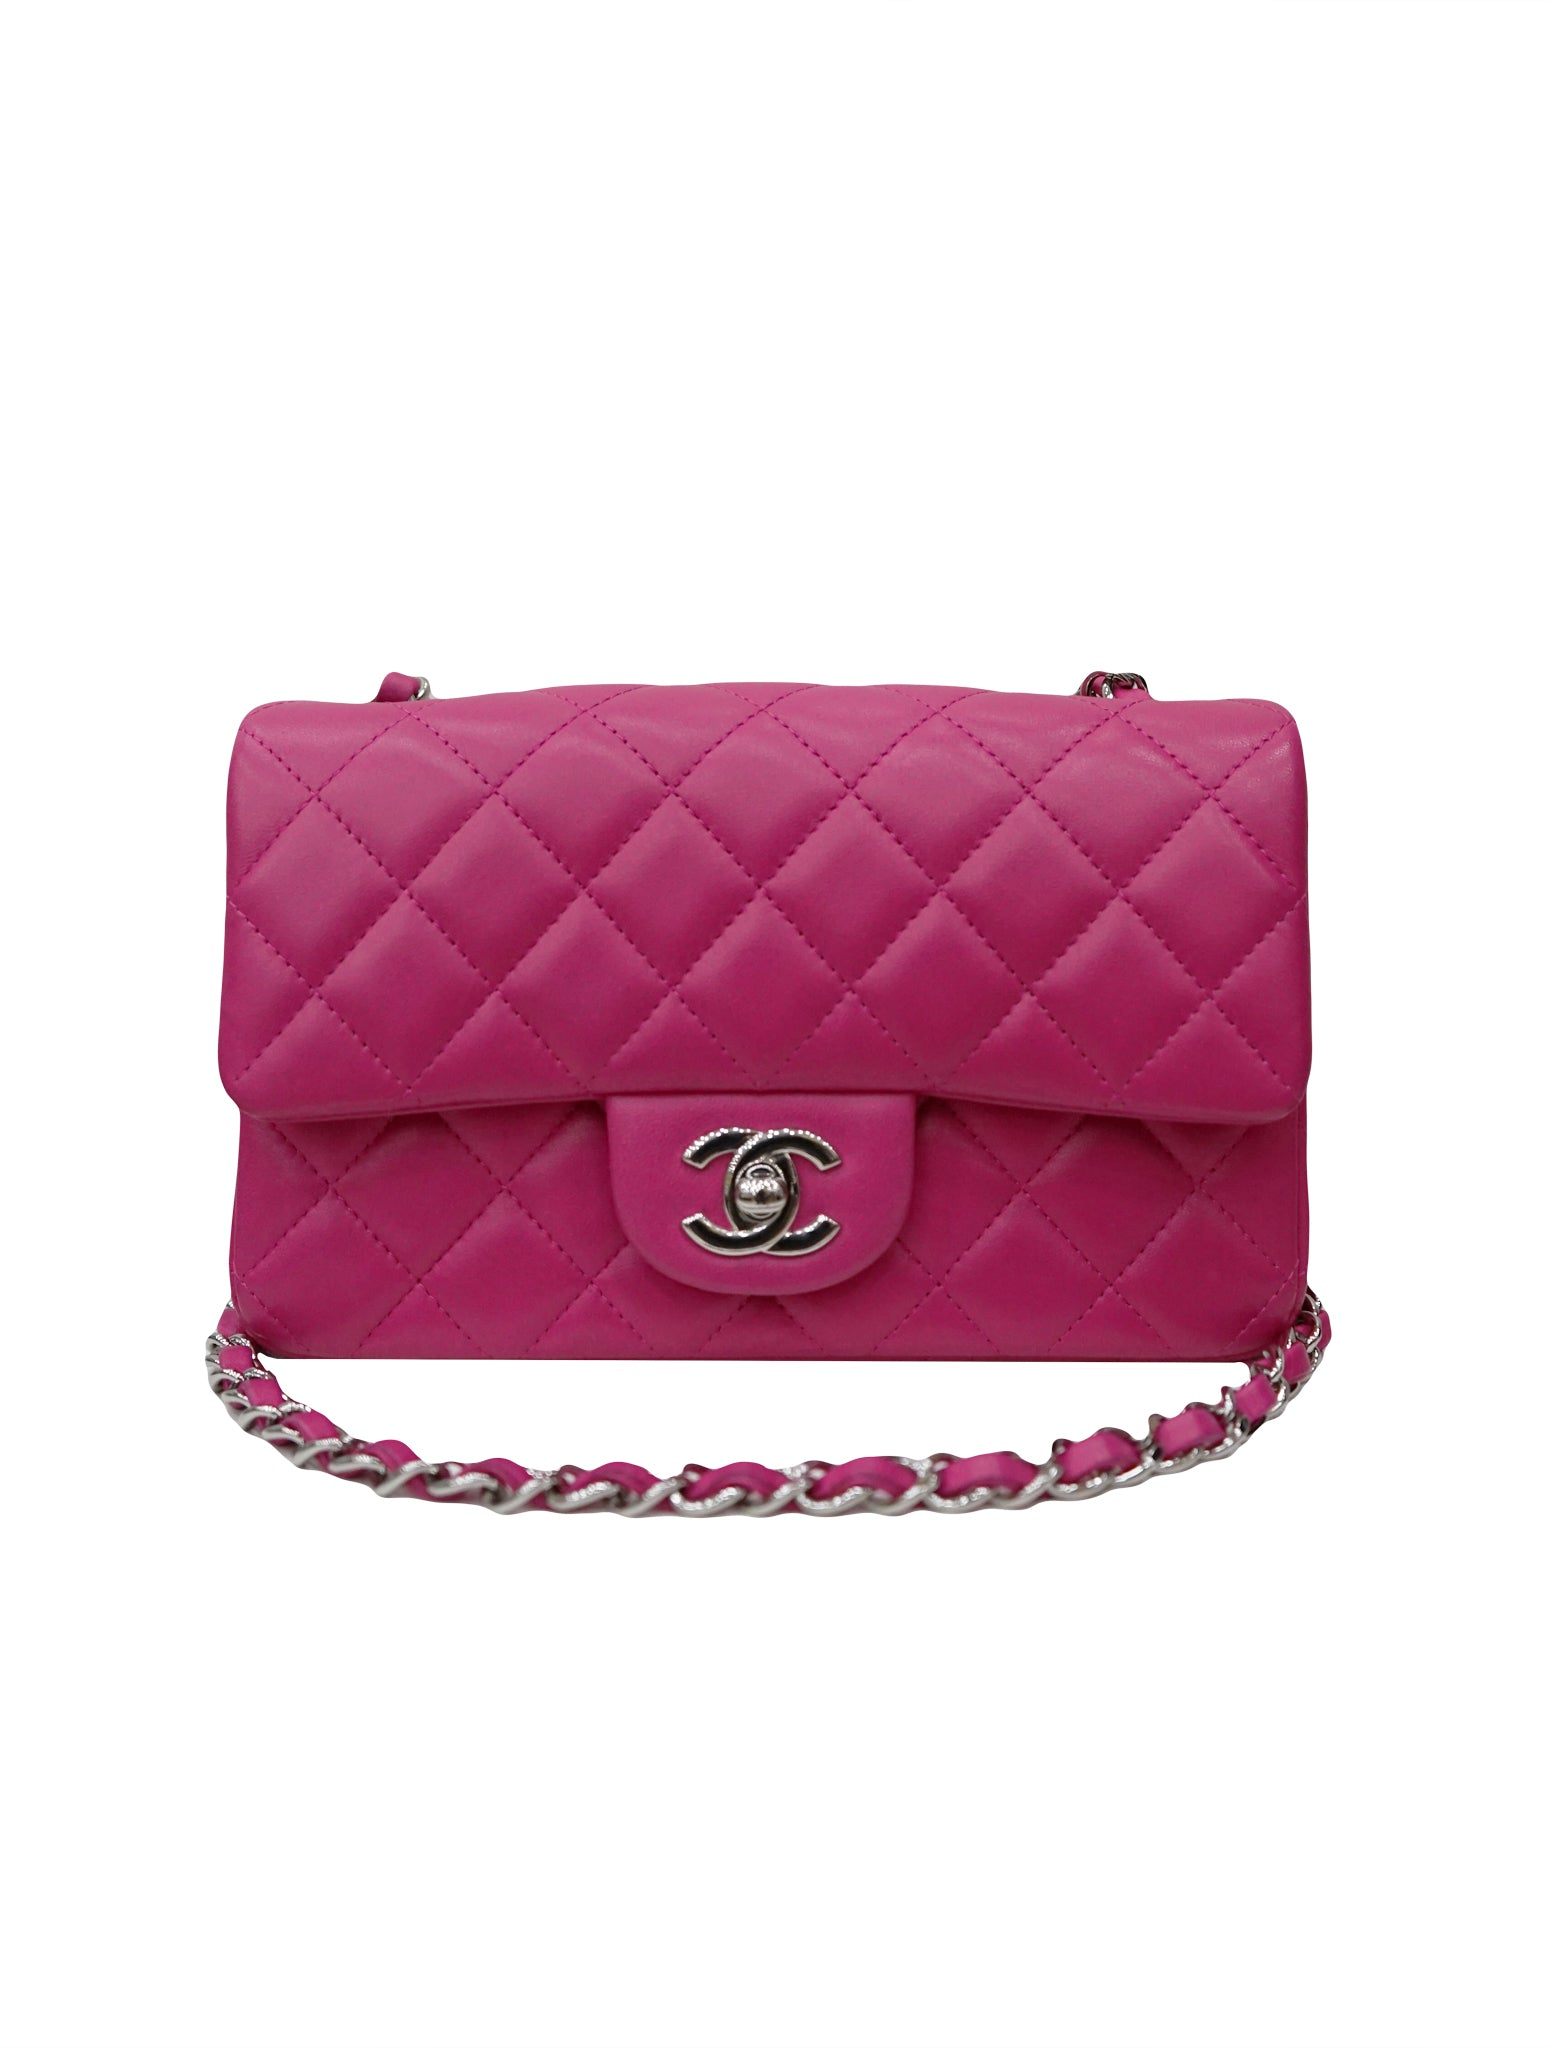 PINK QUILTED LAMBSKIN SINGLE FLAP BAG